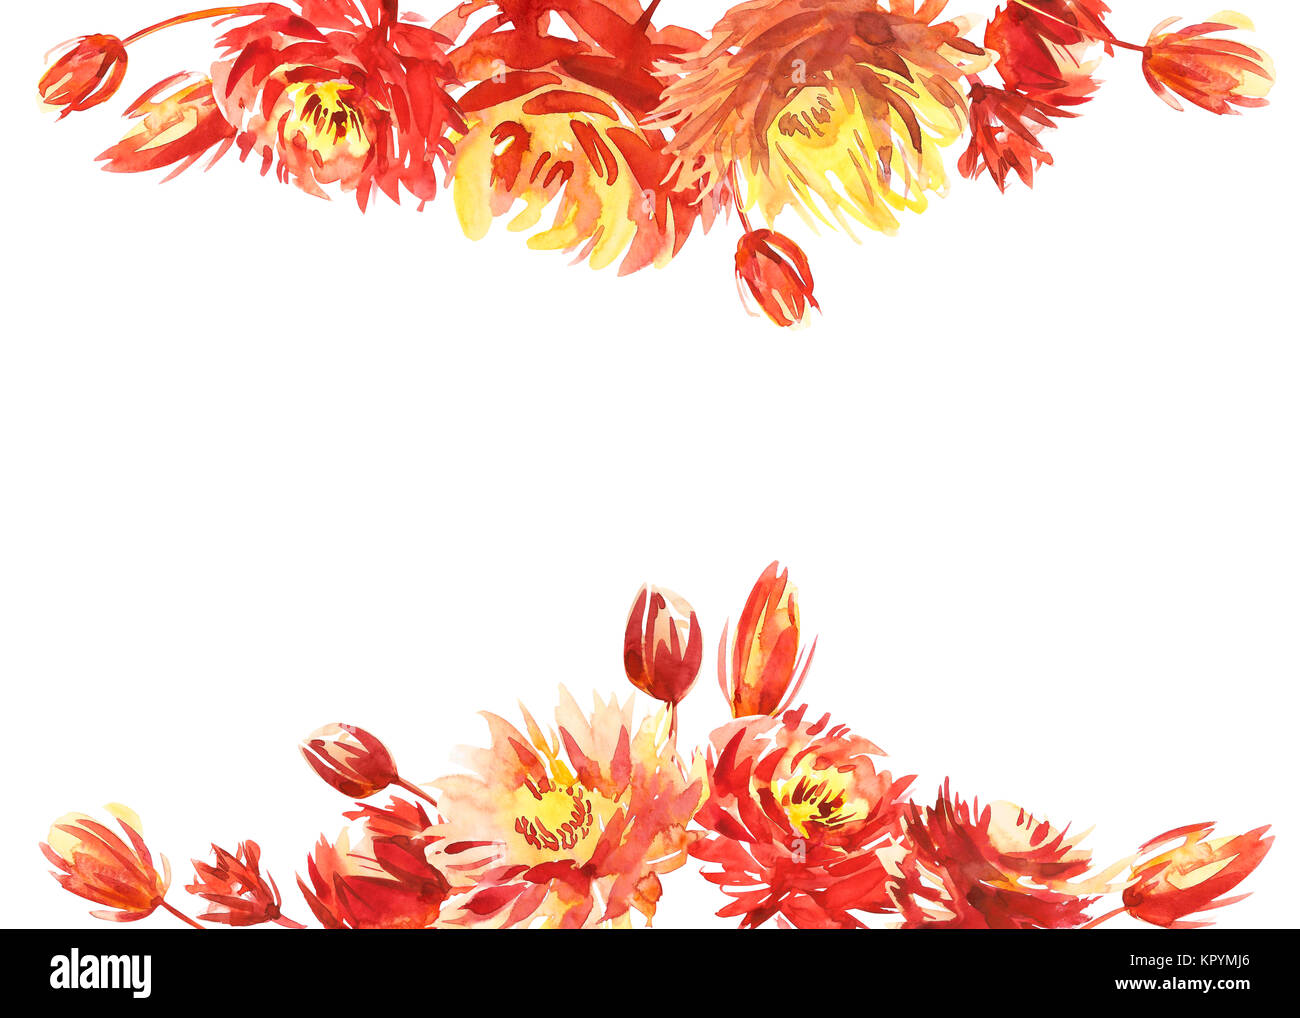 Colorful Watercolor Flower Border Painted Background Isolated On White